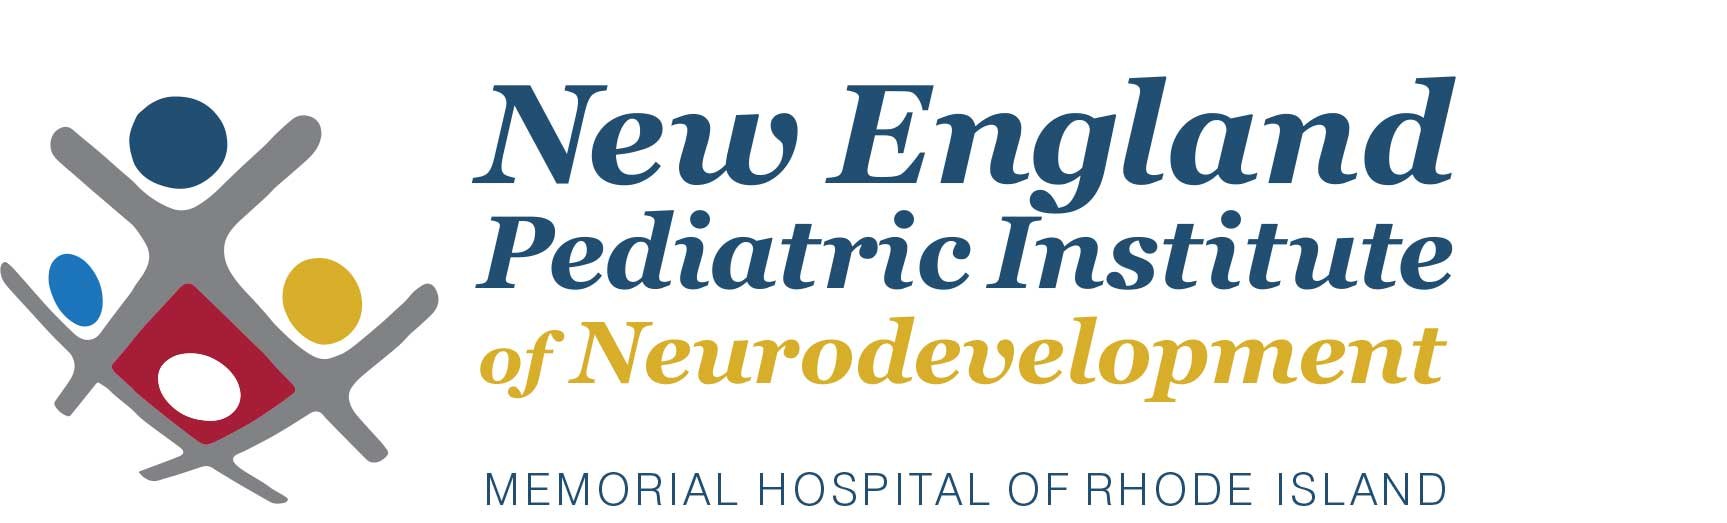 new-england-pediatric-institute-neurodevelopment